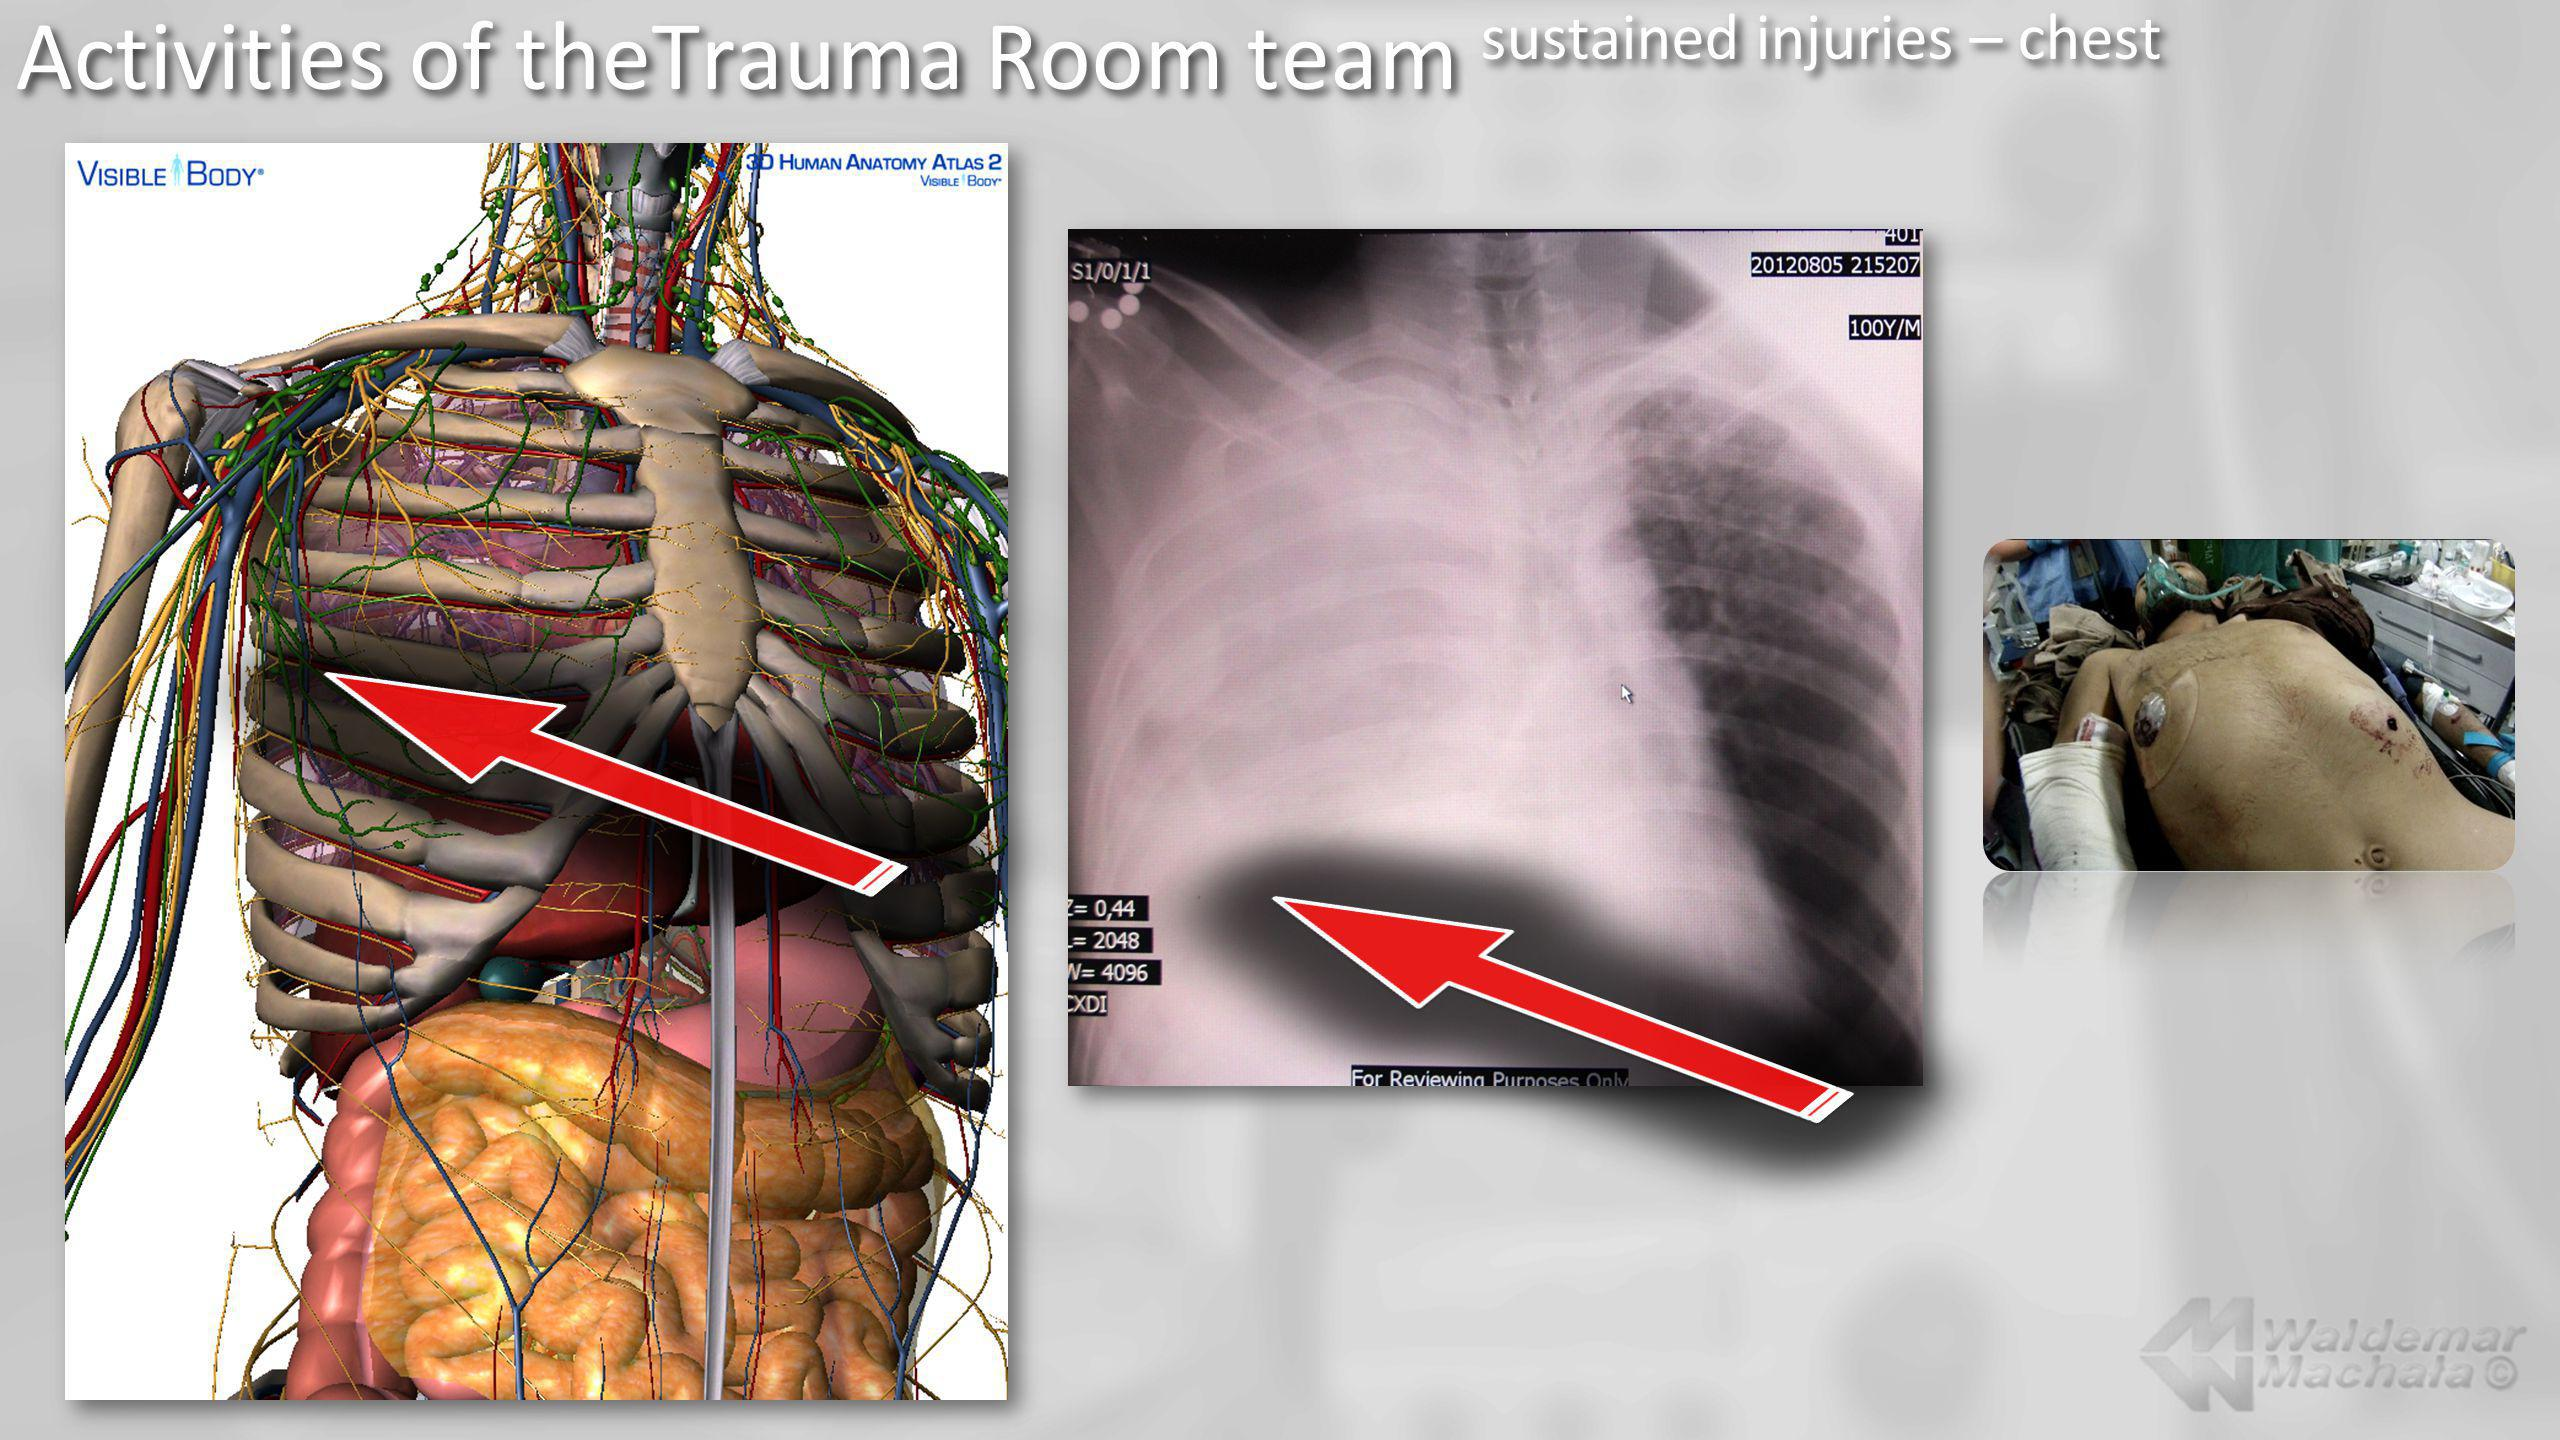 Activities of theTrauma Room team sustained injuries – chest